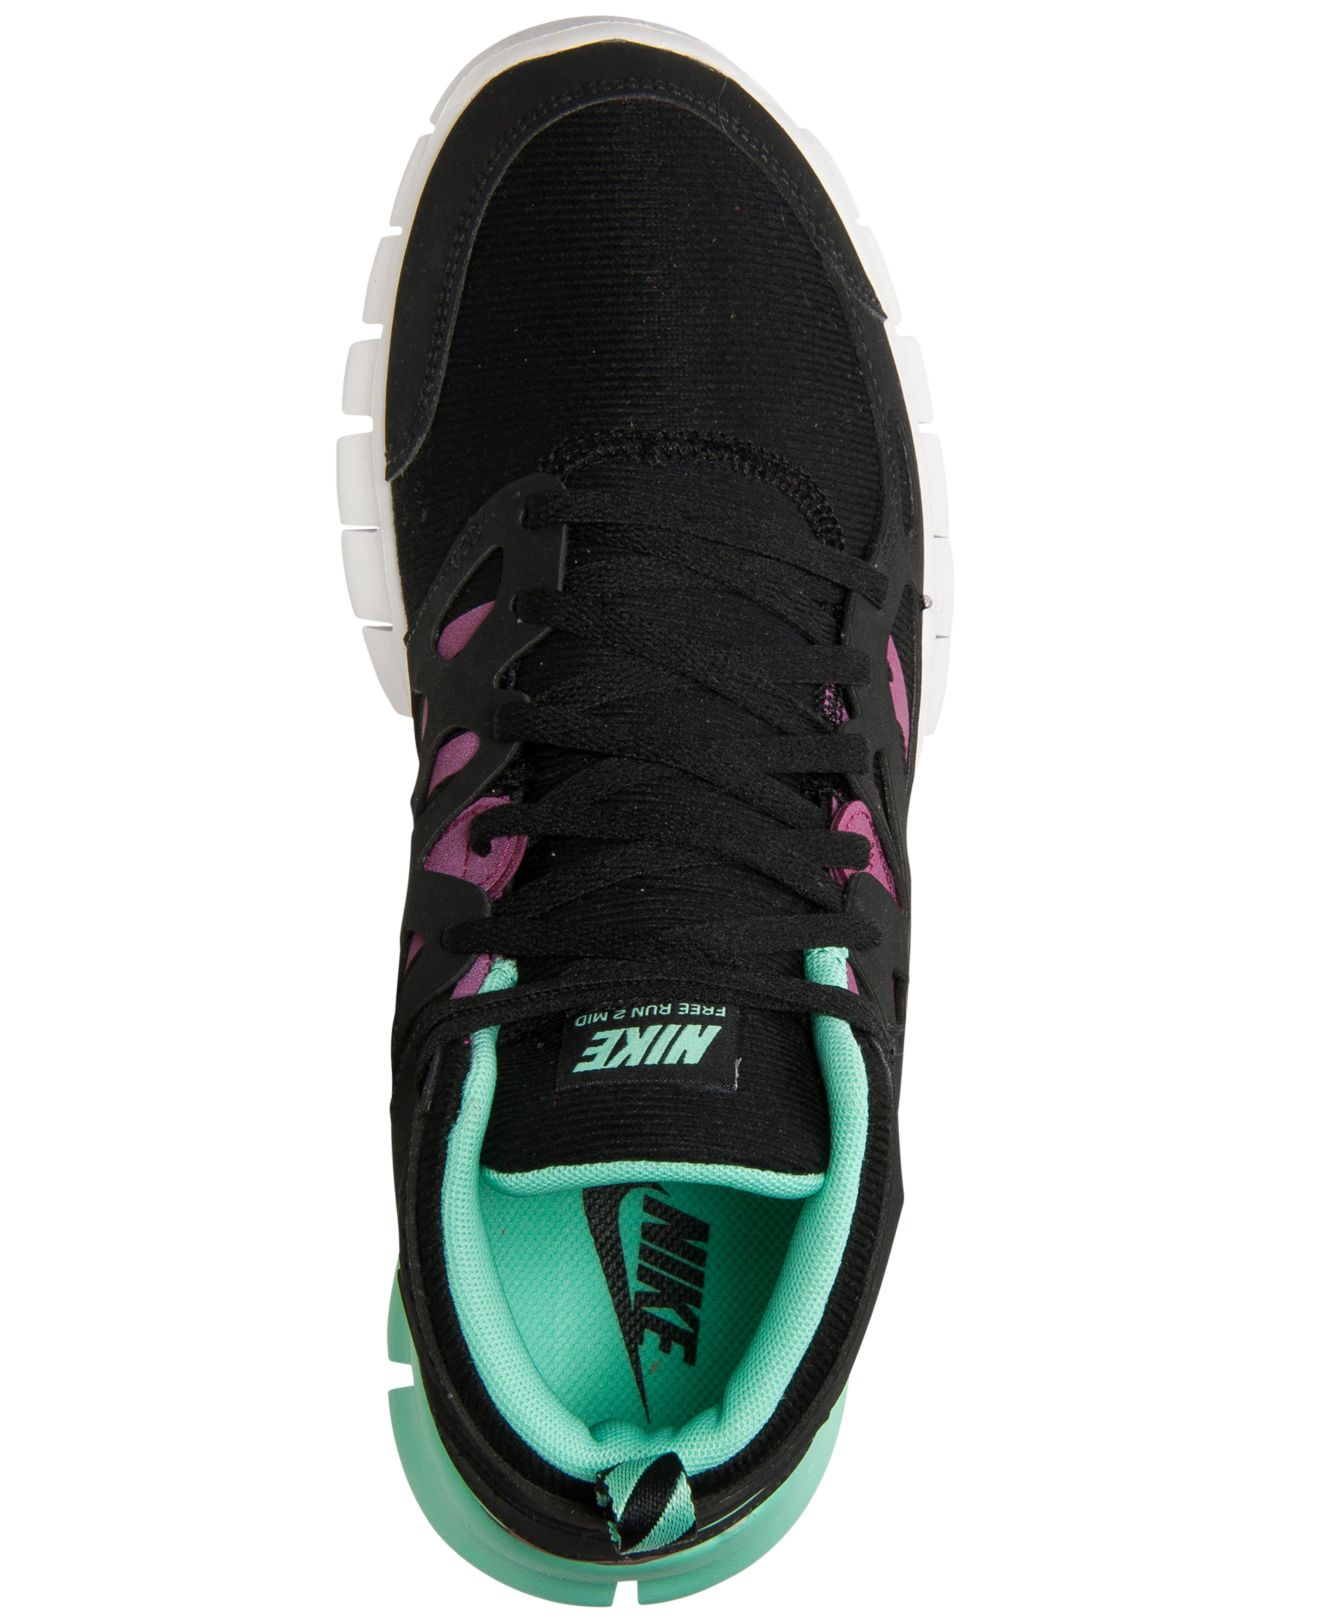 meet f11aa 5ebec ... closeout lyst nike womens free run 2 mid sneakerboot from finish line  in black 75e8d 9f5ac